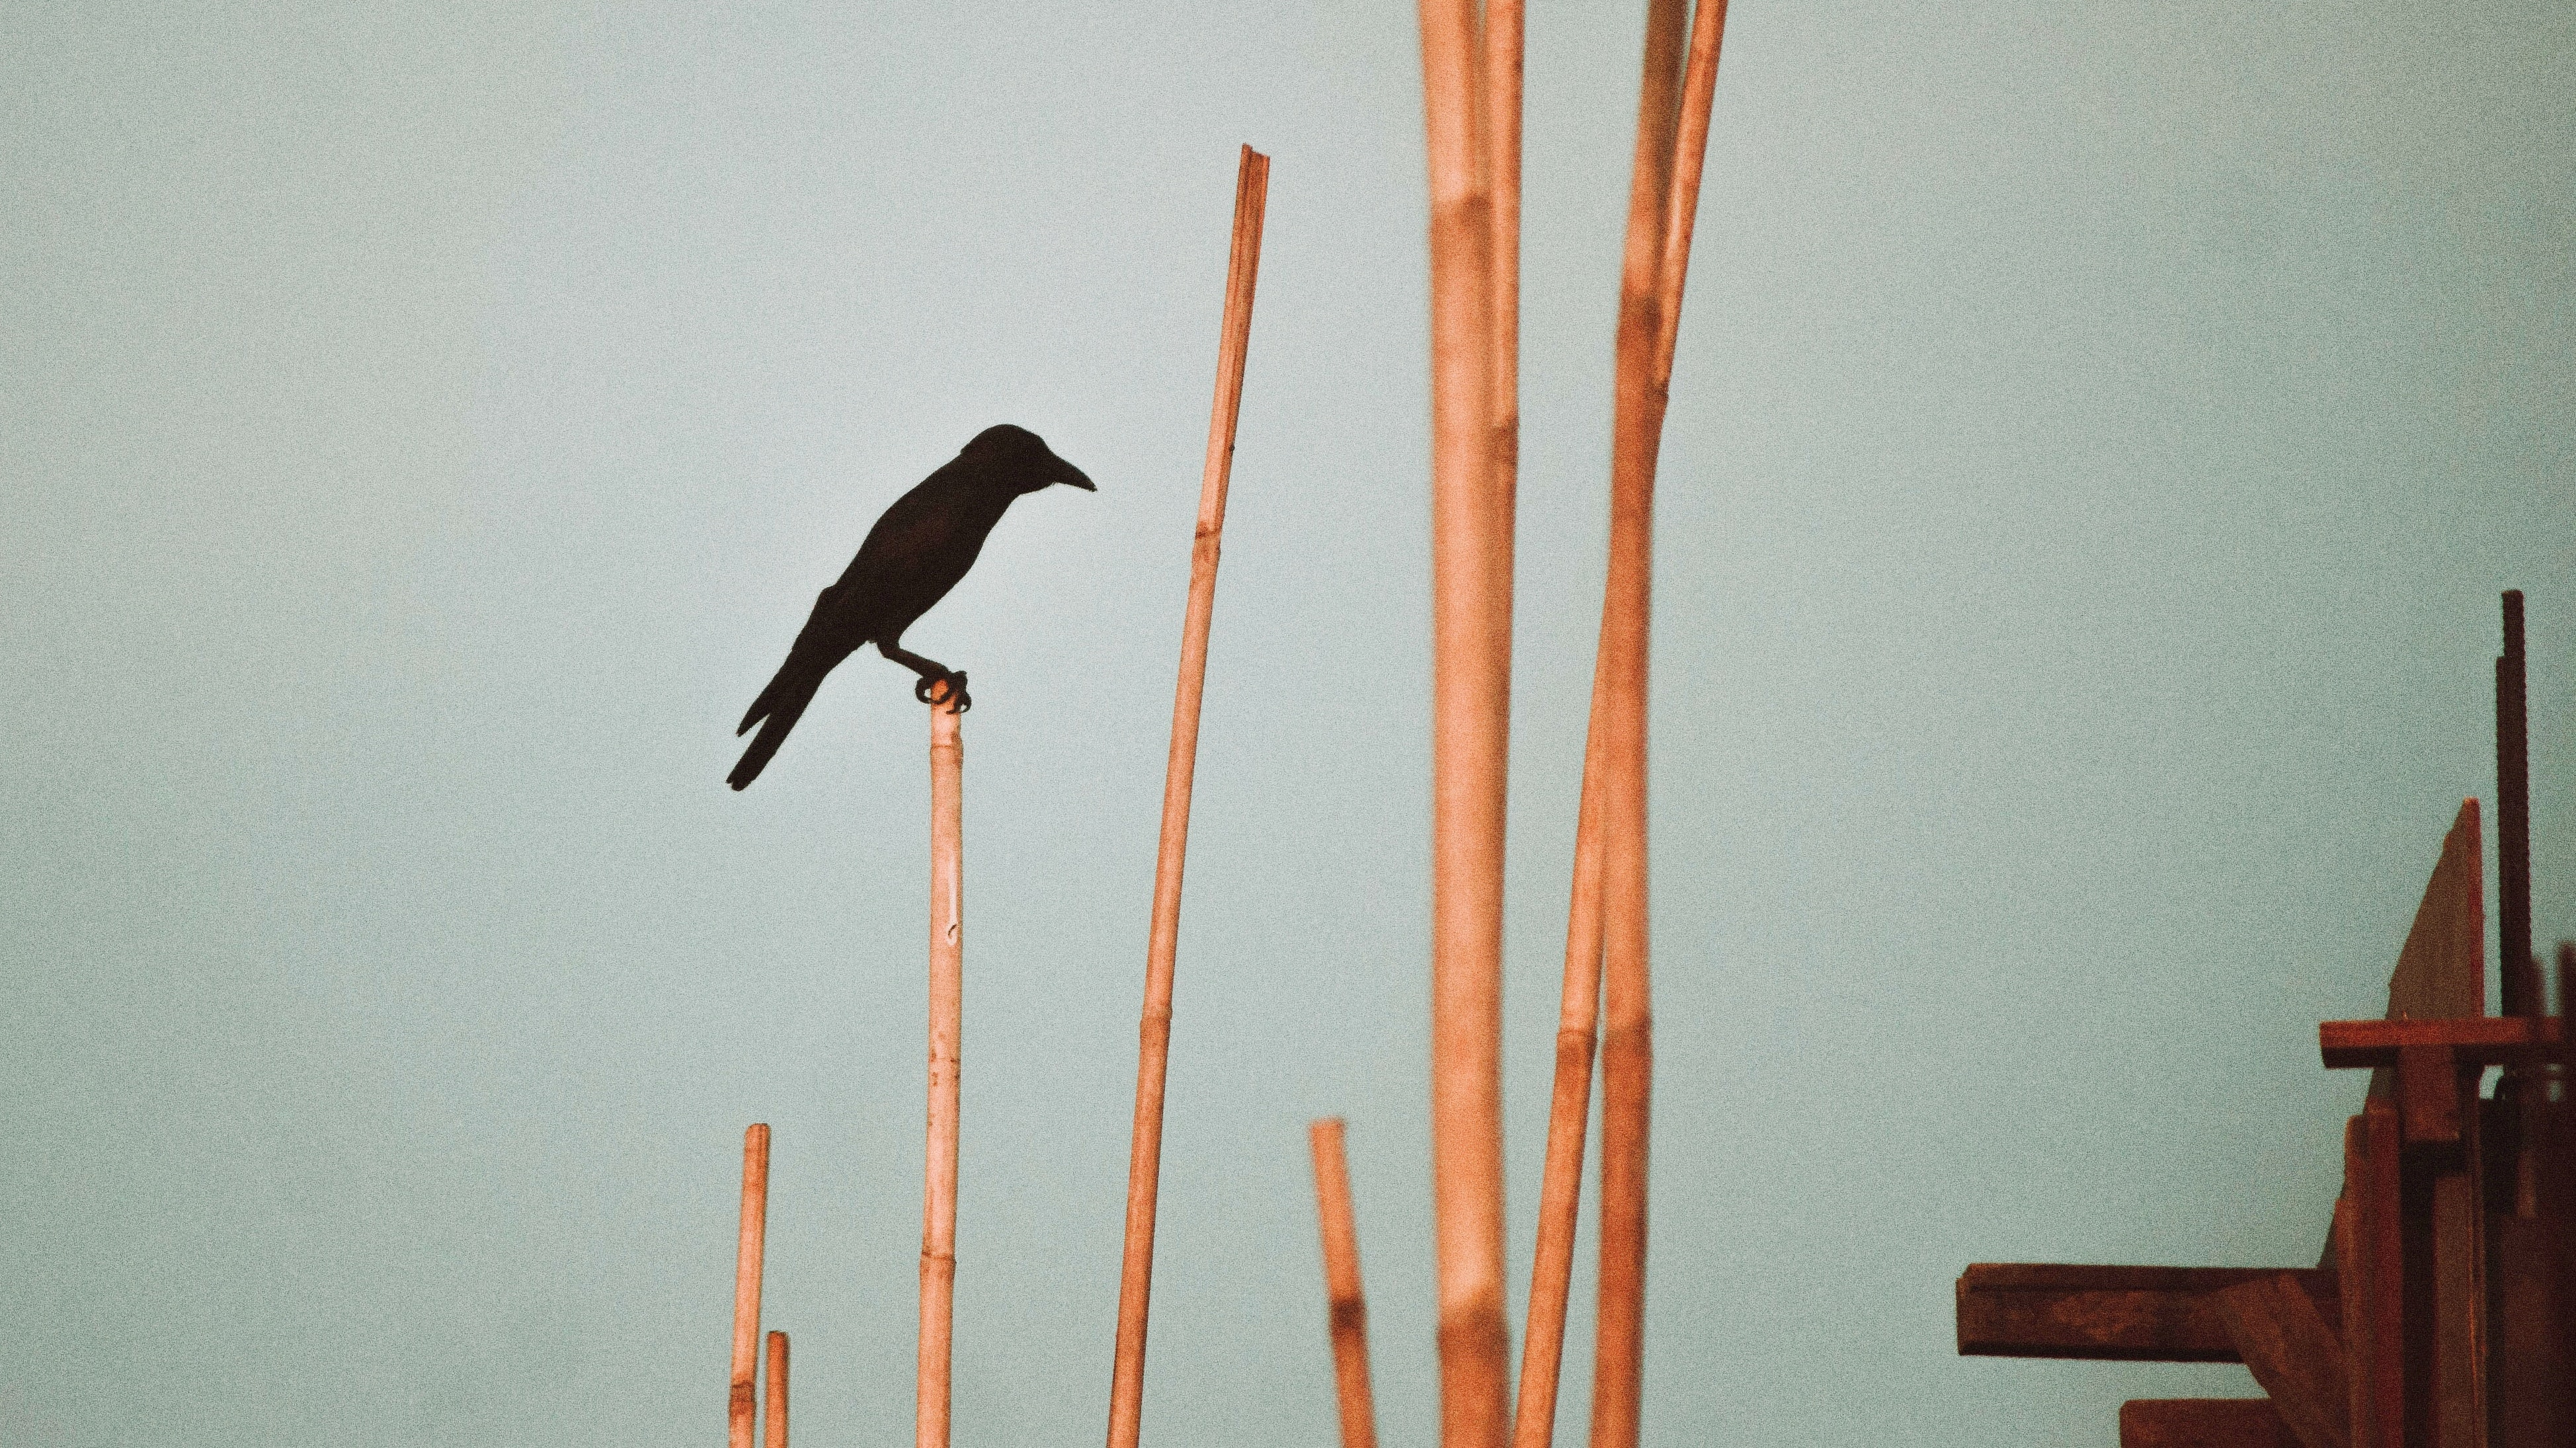 crow perching on bamboo stick